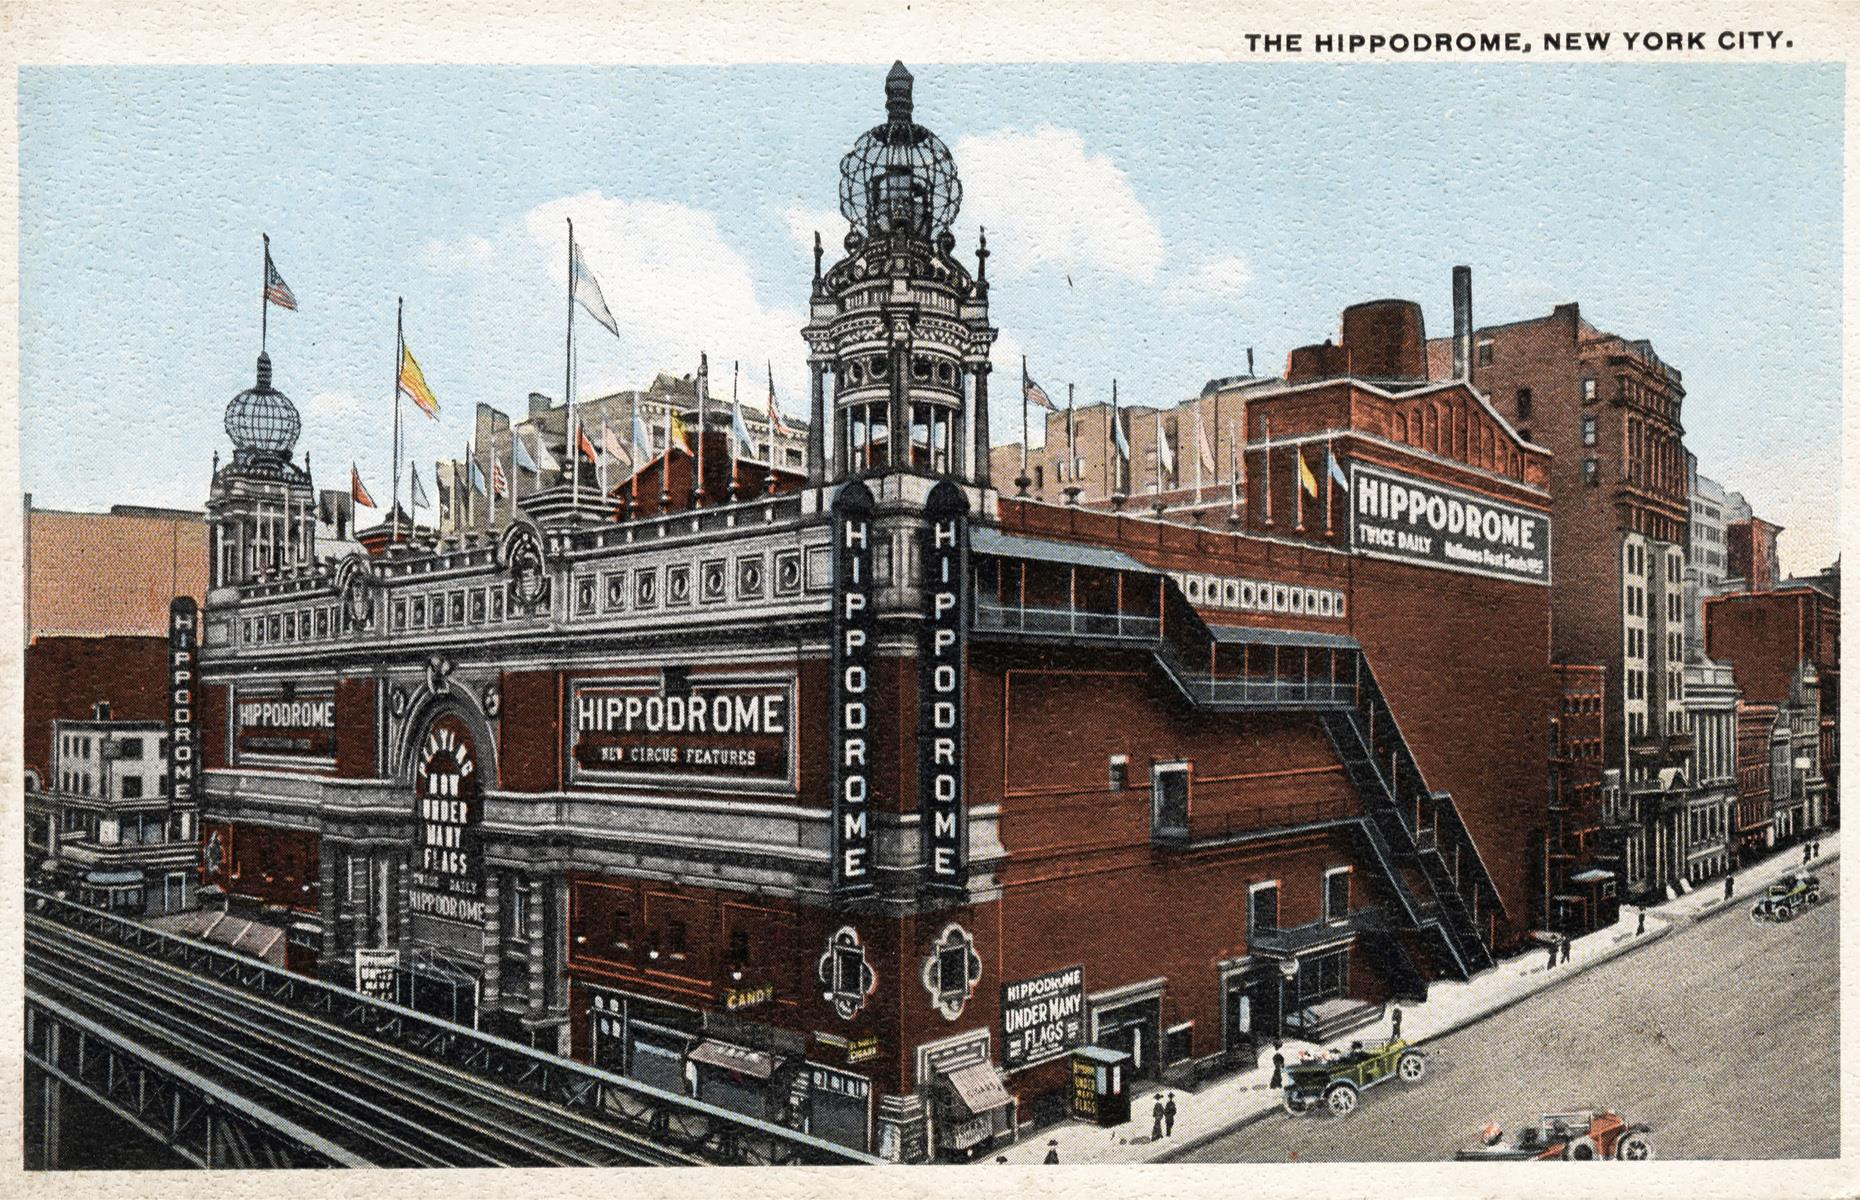 Slide 30 of 31: The Big Apple has more than its fair share of opulent theaters and the Hippodrome Theatre was no exception. It was the vision of architect Frederick Thompson and showman Elmer Dundy (the dream team behind Coney Island's dazzling Luna Park) and was finished in 1905. It was a behemoth among theaters too, with capacity for 5,000-plus people and a vast stage playing host to greats including Harry Houdini and plenty of circus animals.